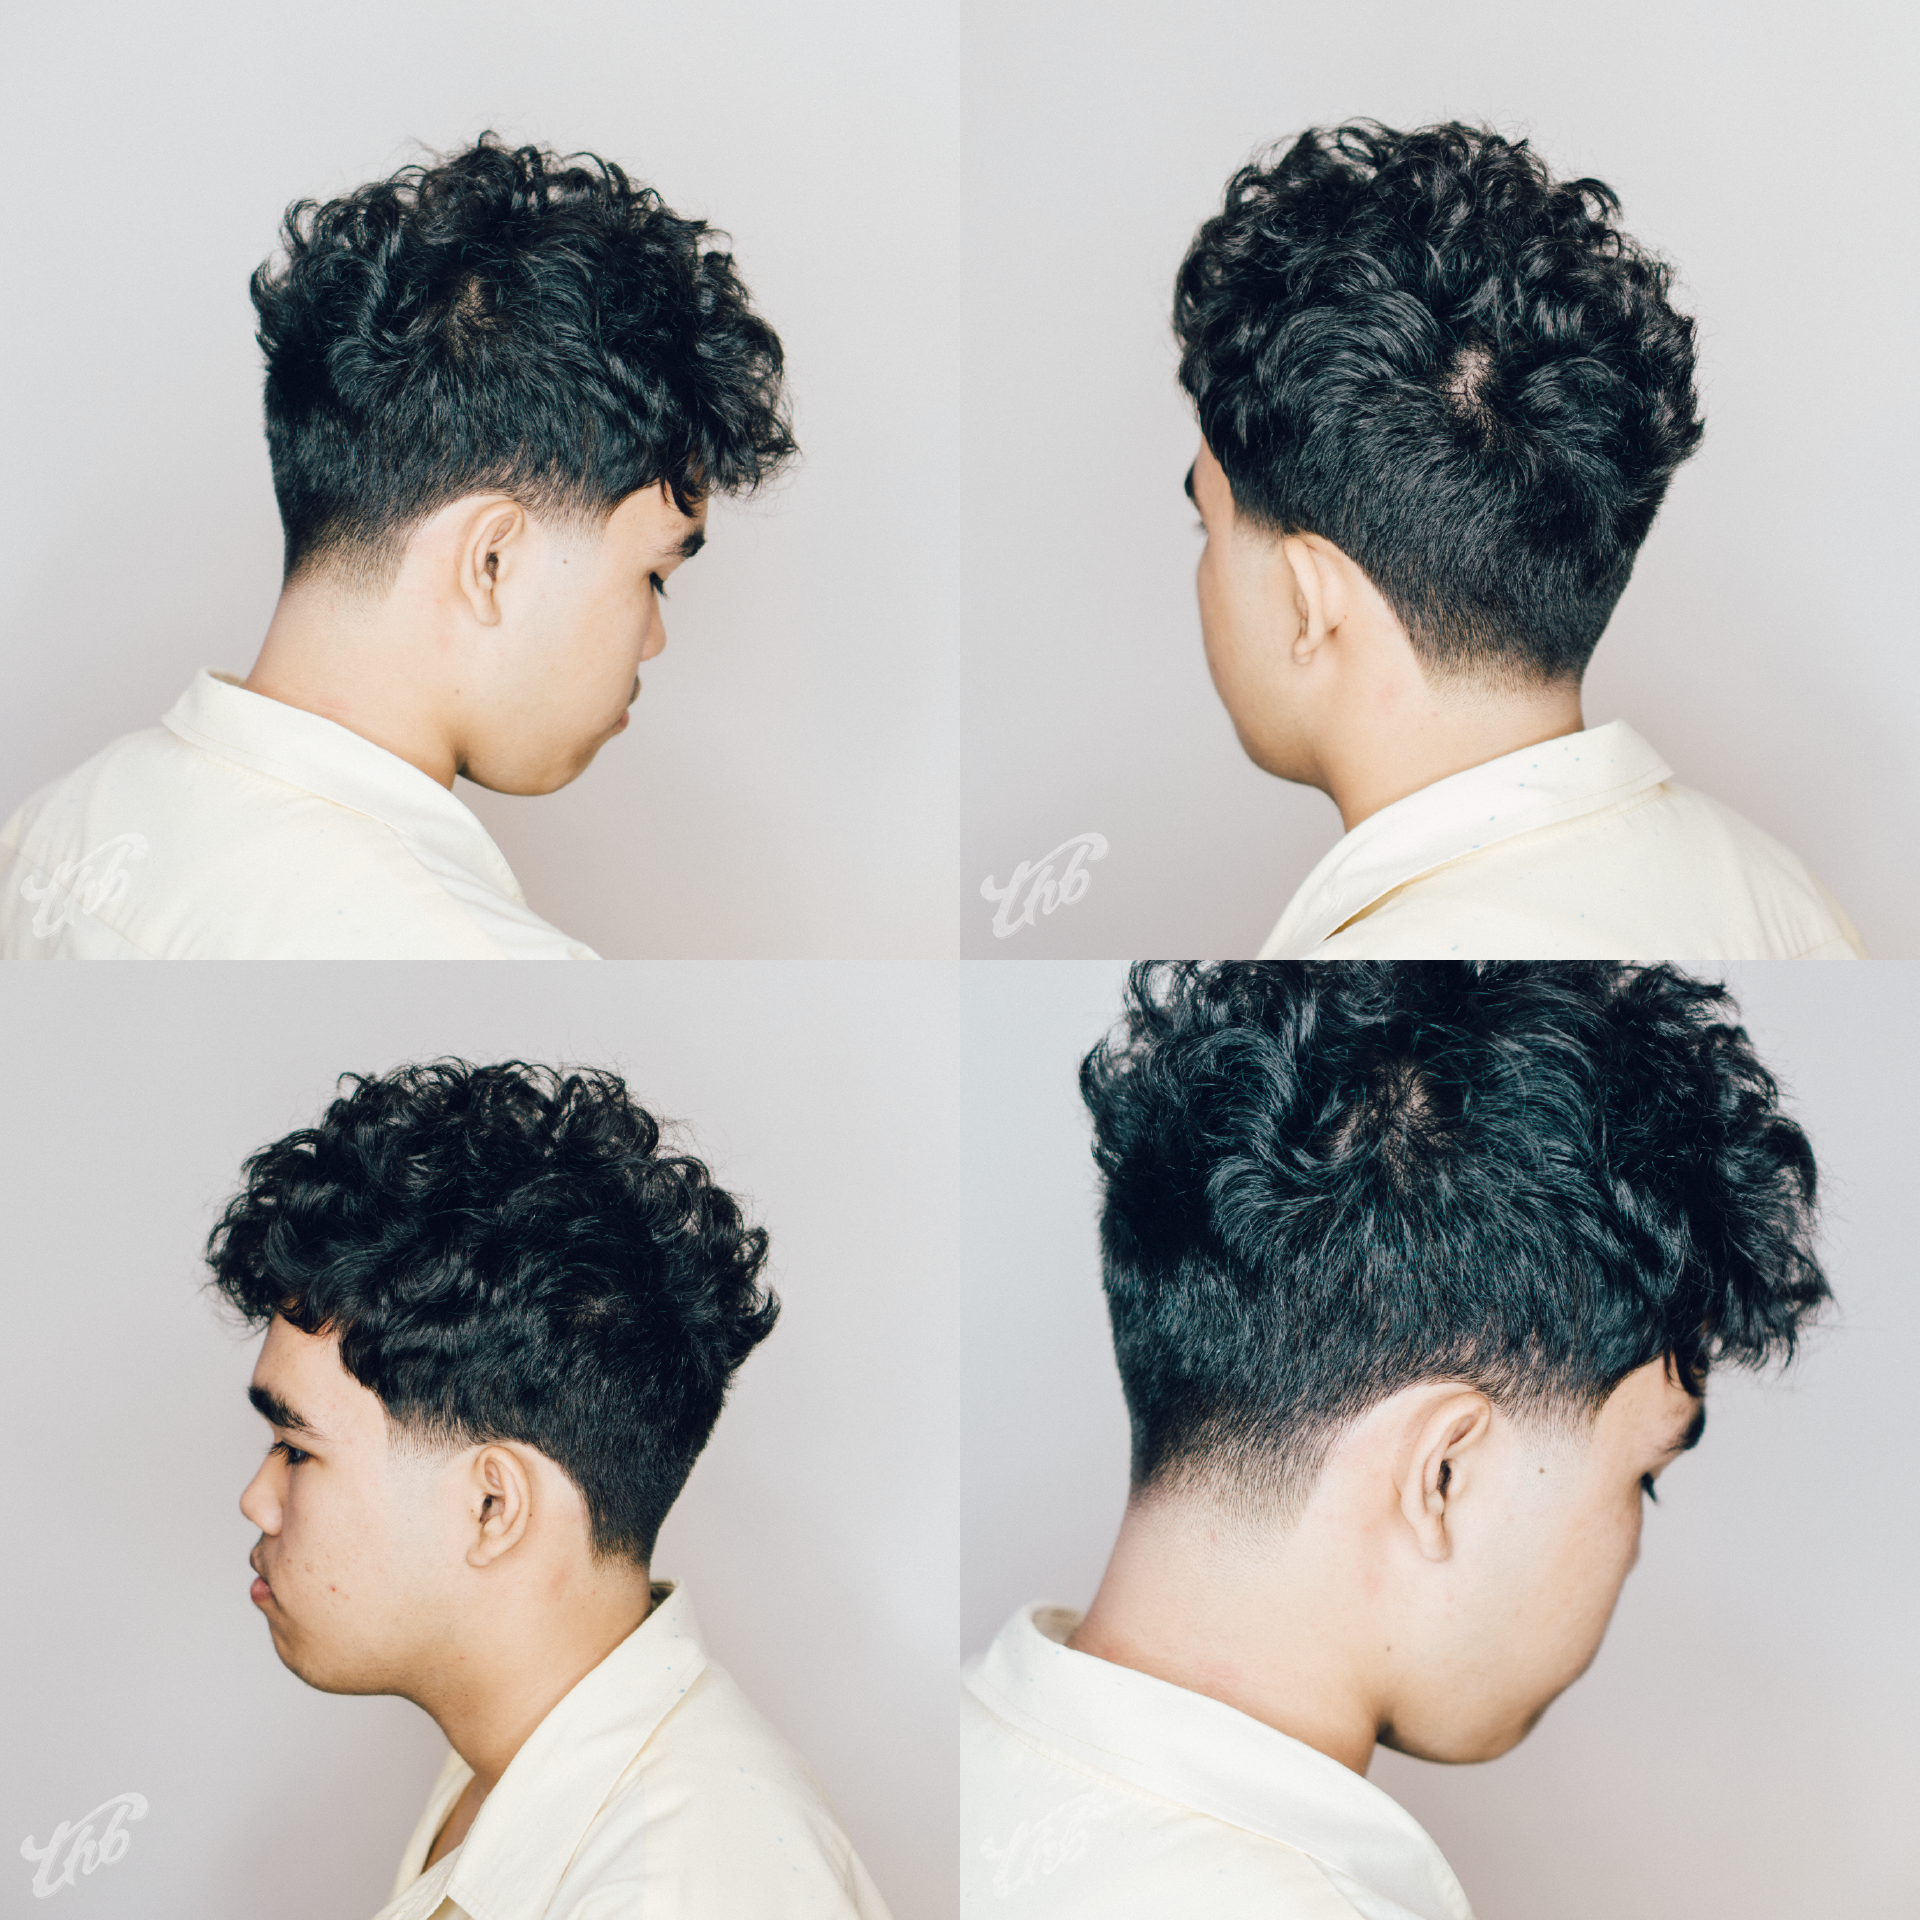 Delightful Haircut By Barber Wilson (@wilson_thebarber) Asian Taper Fade, Curly Top,  Mens